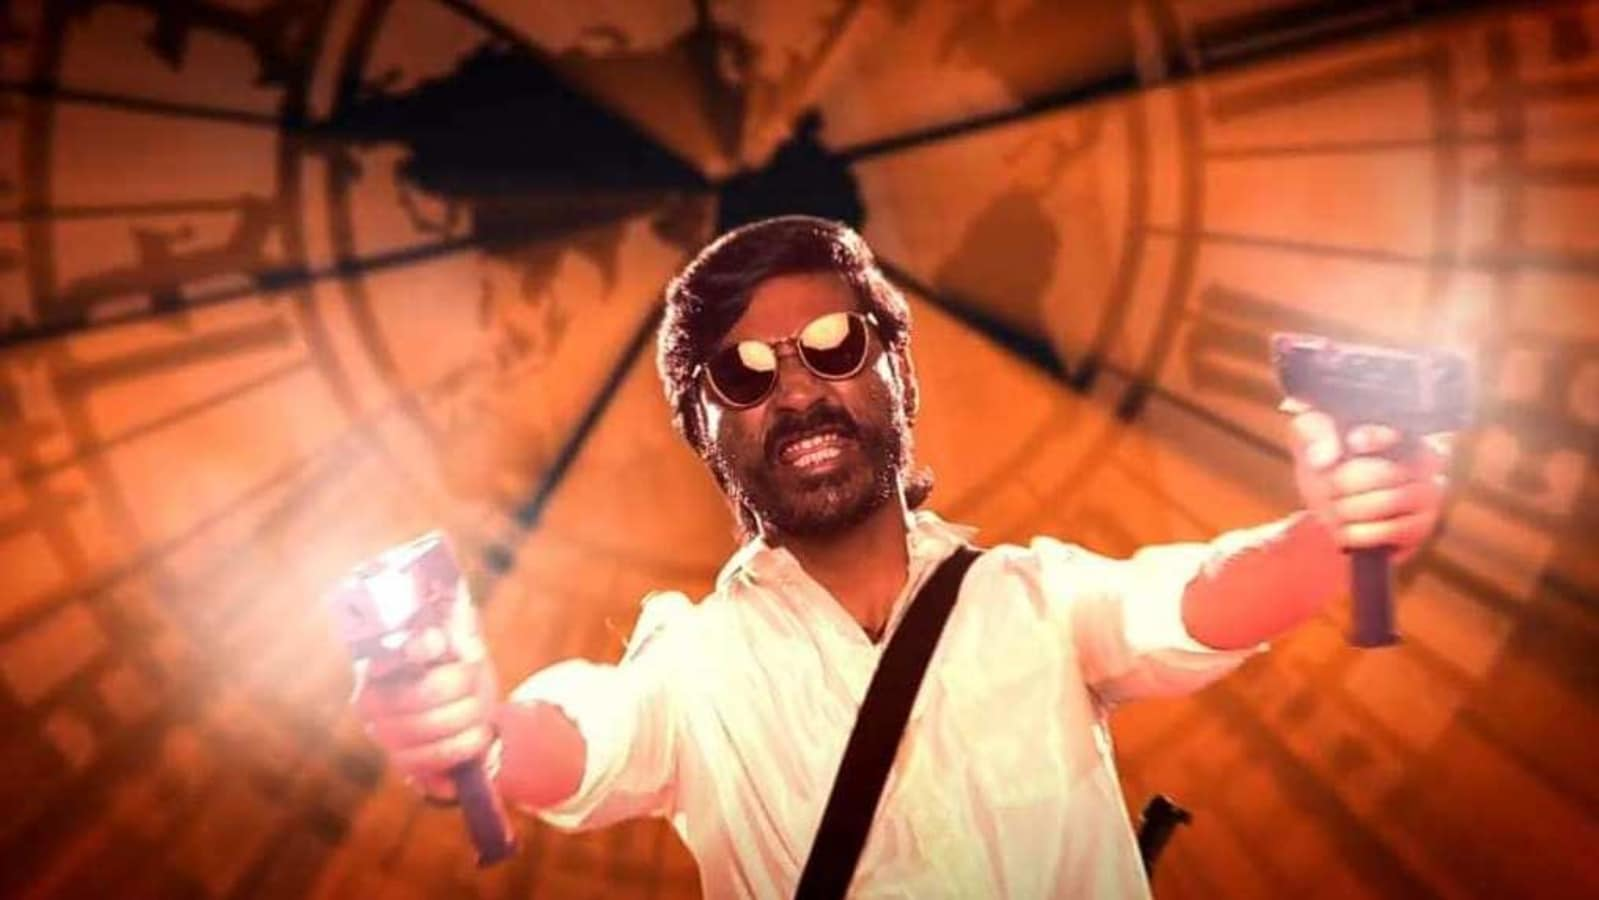 Dhanush's Jagame Thanthiram gearing up for February release in cinemas:  report - Hindustan Times